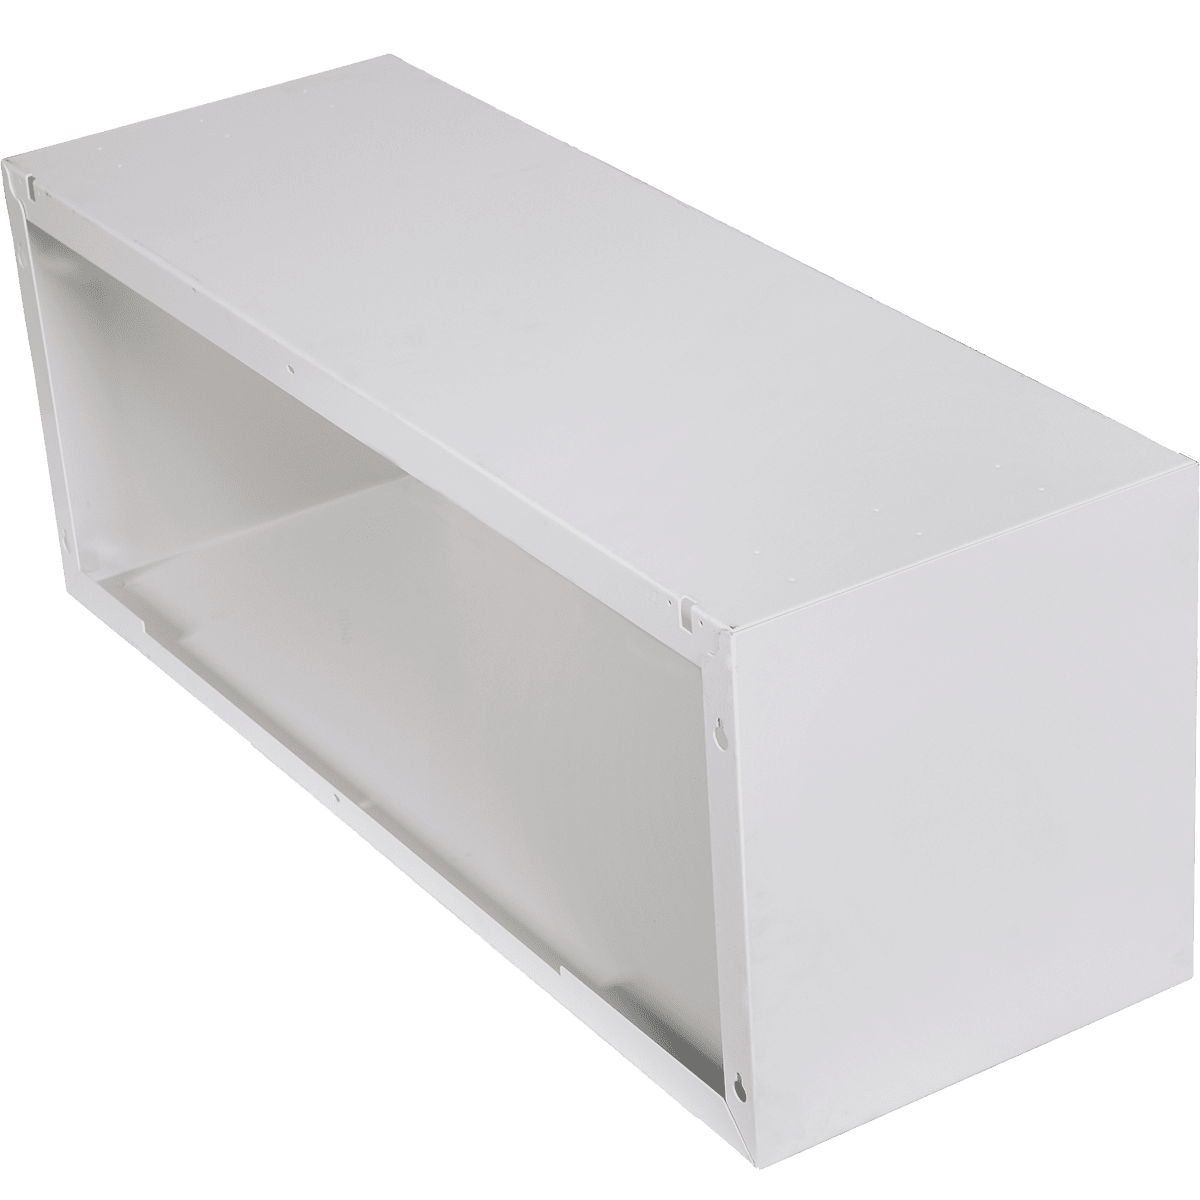 Perfect Aire Ptac Wall Sleeve With Drain Sylvane